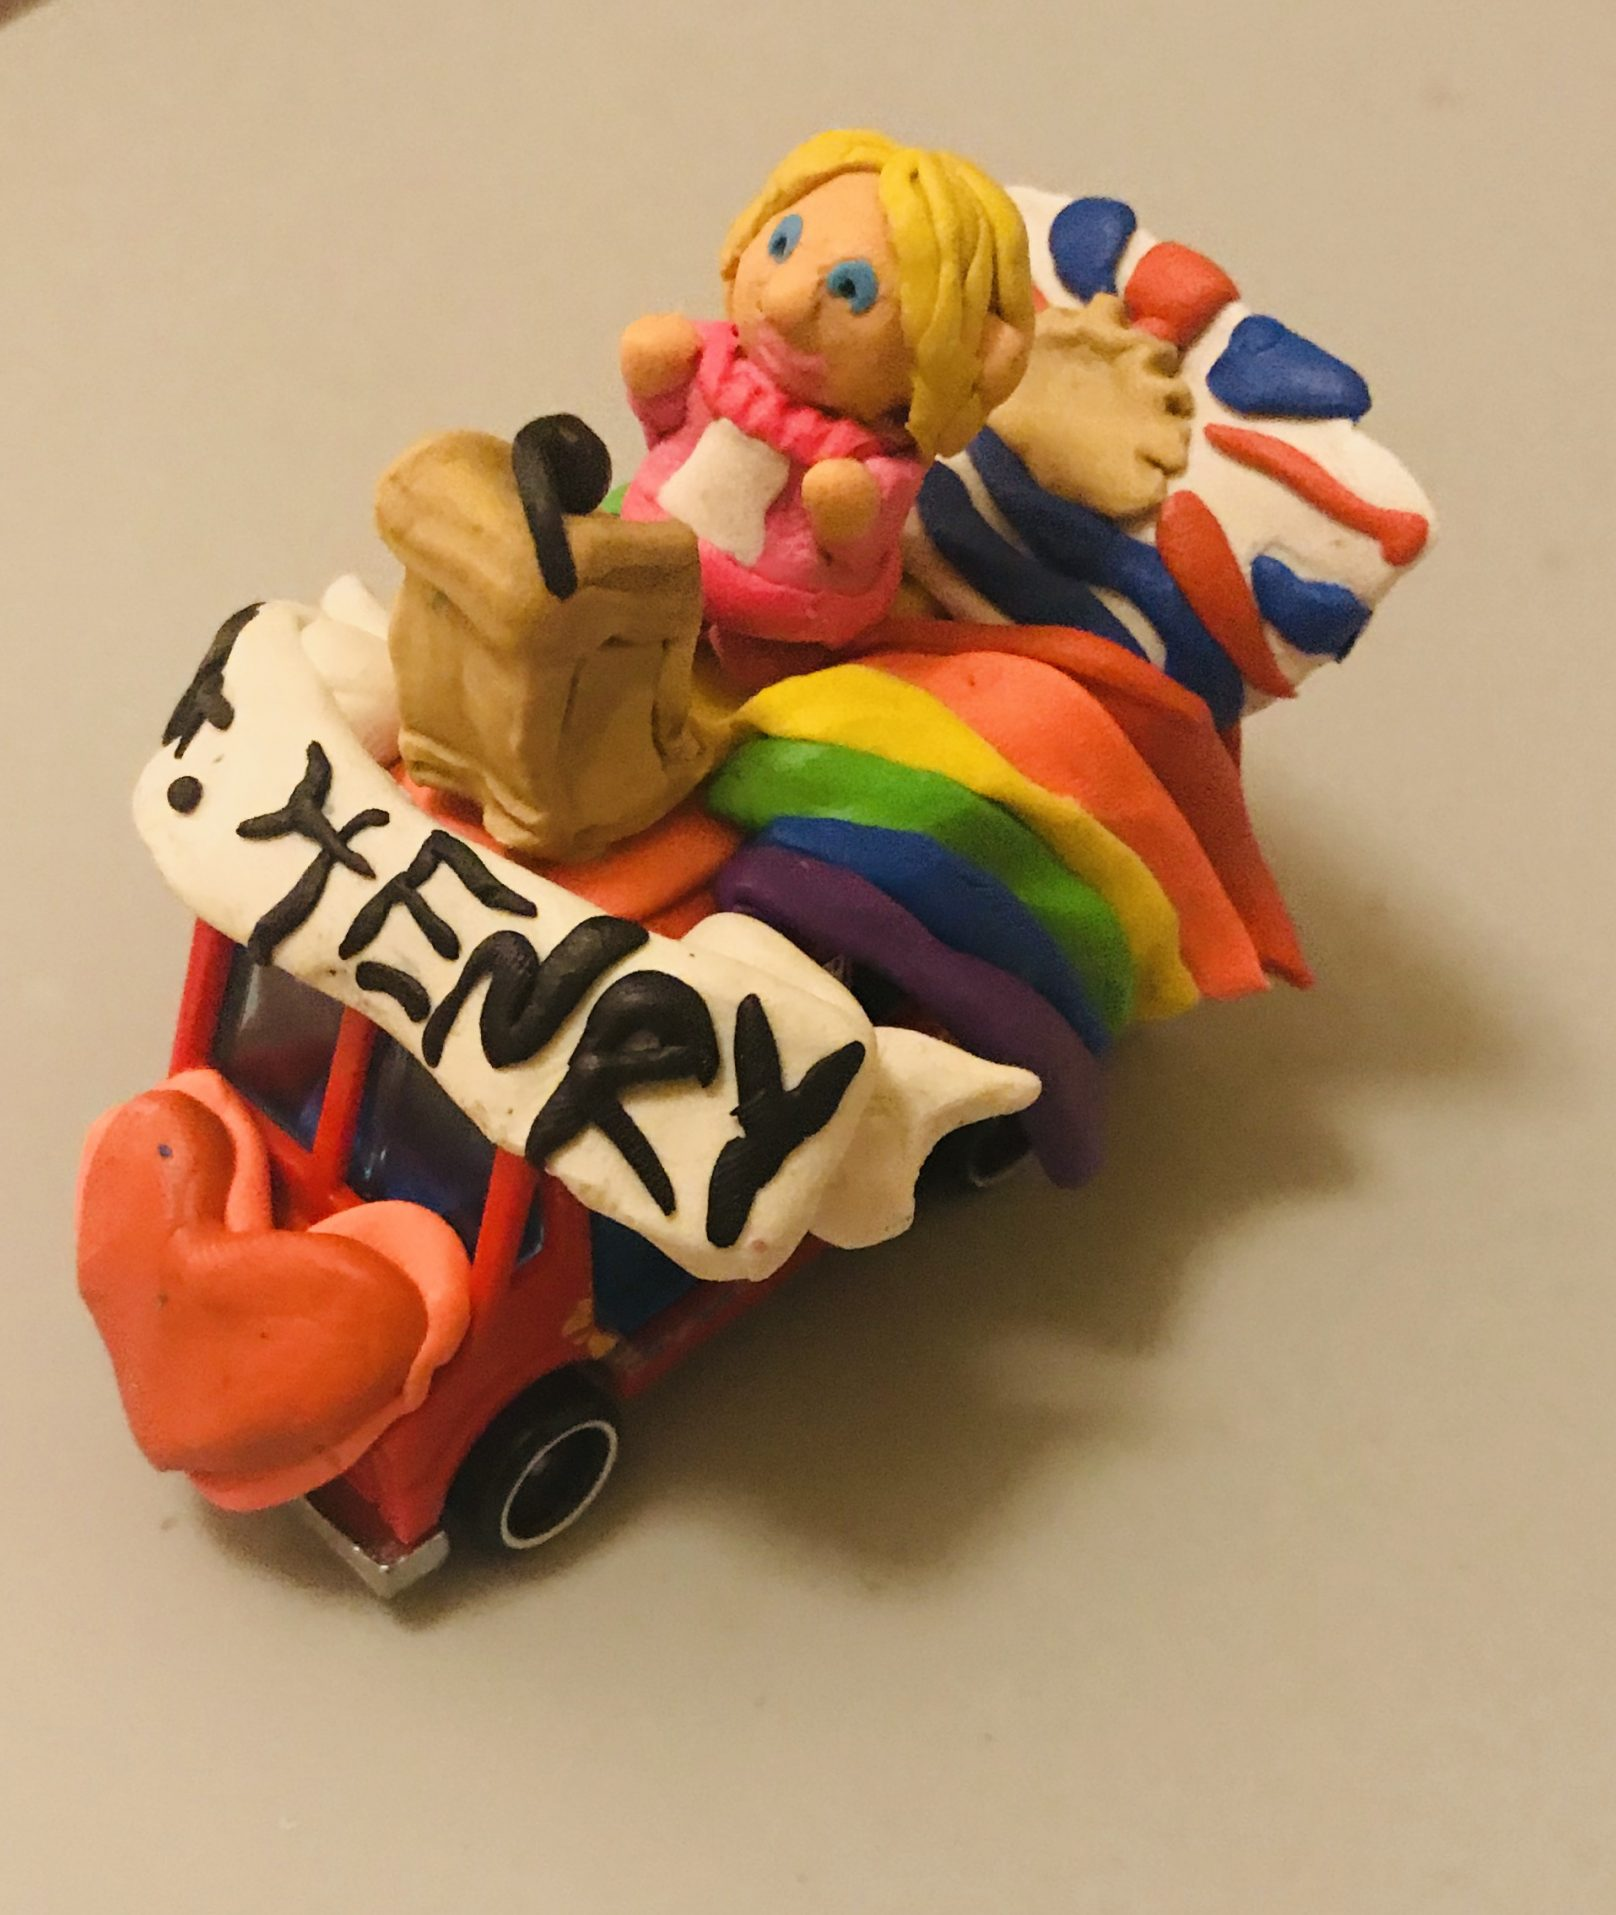 A mini parade float has been created out of clay encasing a toy car. A clay Bonnie Henry is standing at the top at a podium, with her name molded in black letters below. A rainbow and British Columbia flag are beside and behind her.